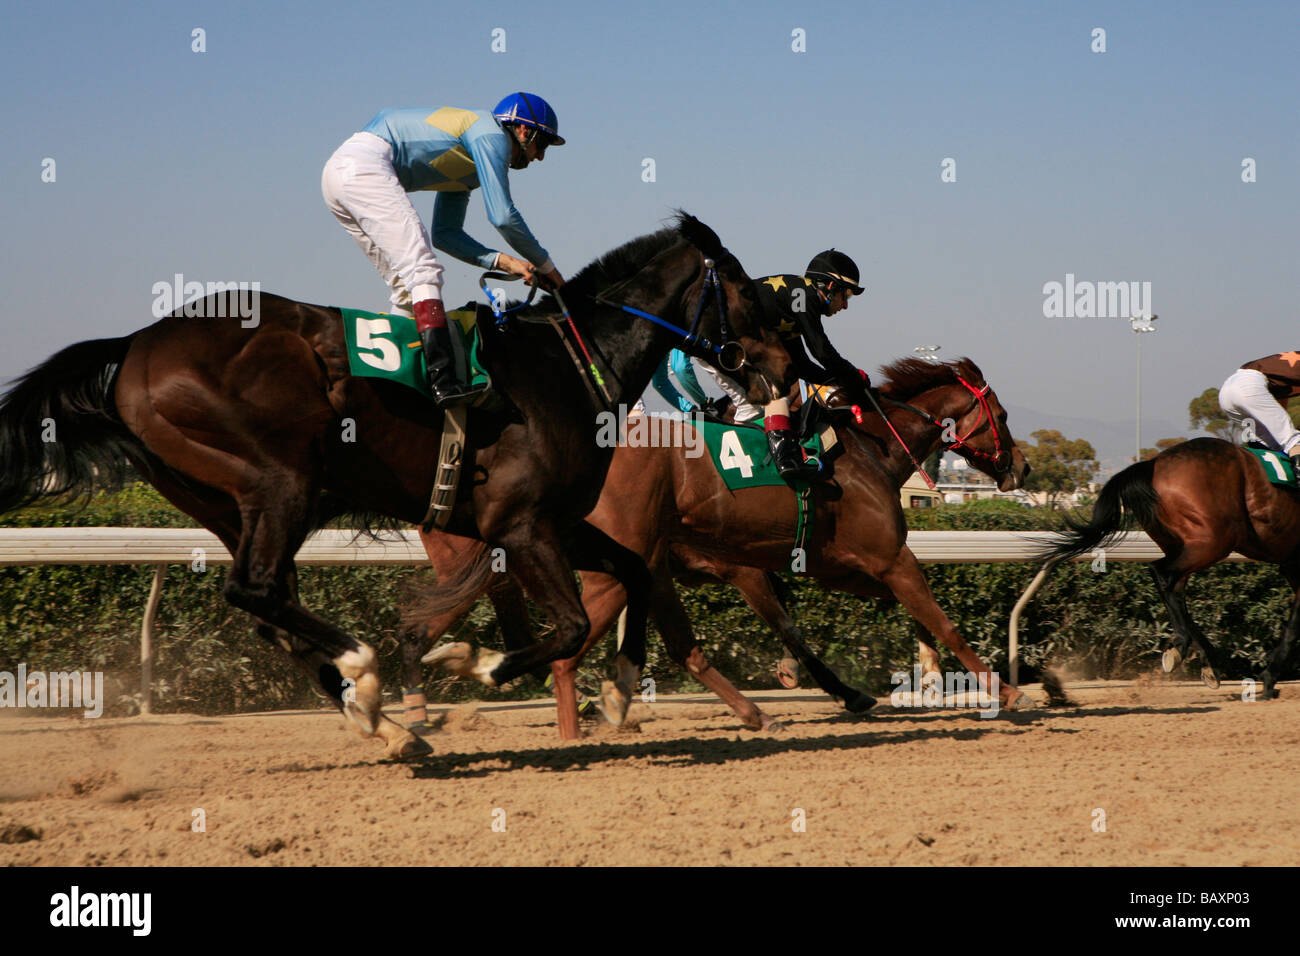 Jockeys riding race horses at a horse race, Nicosia, Lefkosia, South Cyprus, Cyprus - Stock Image